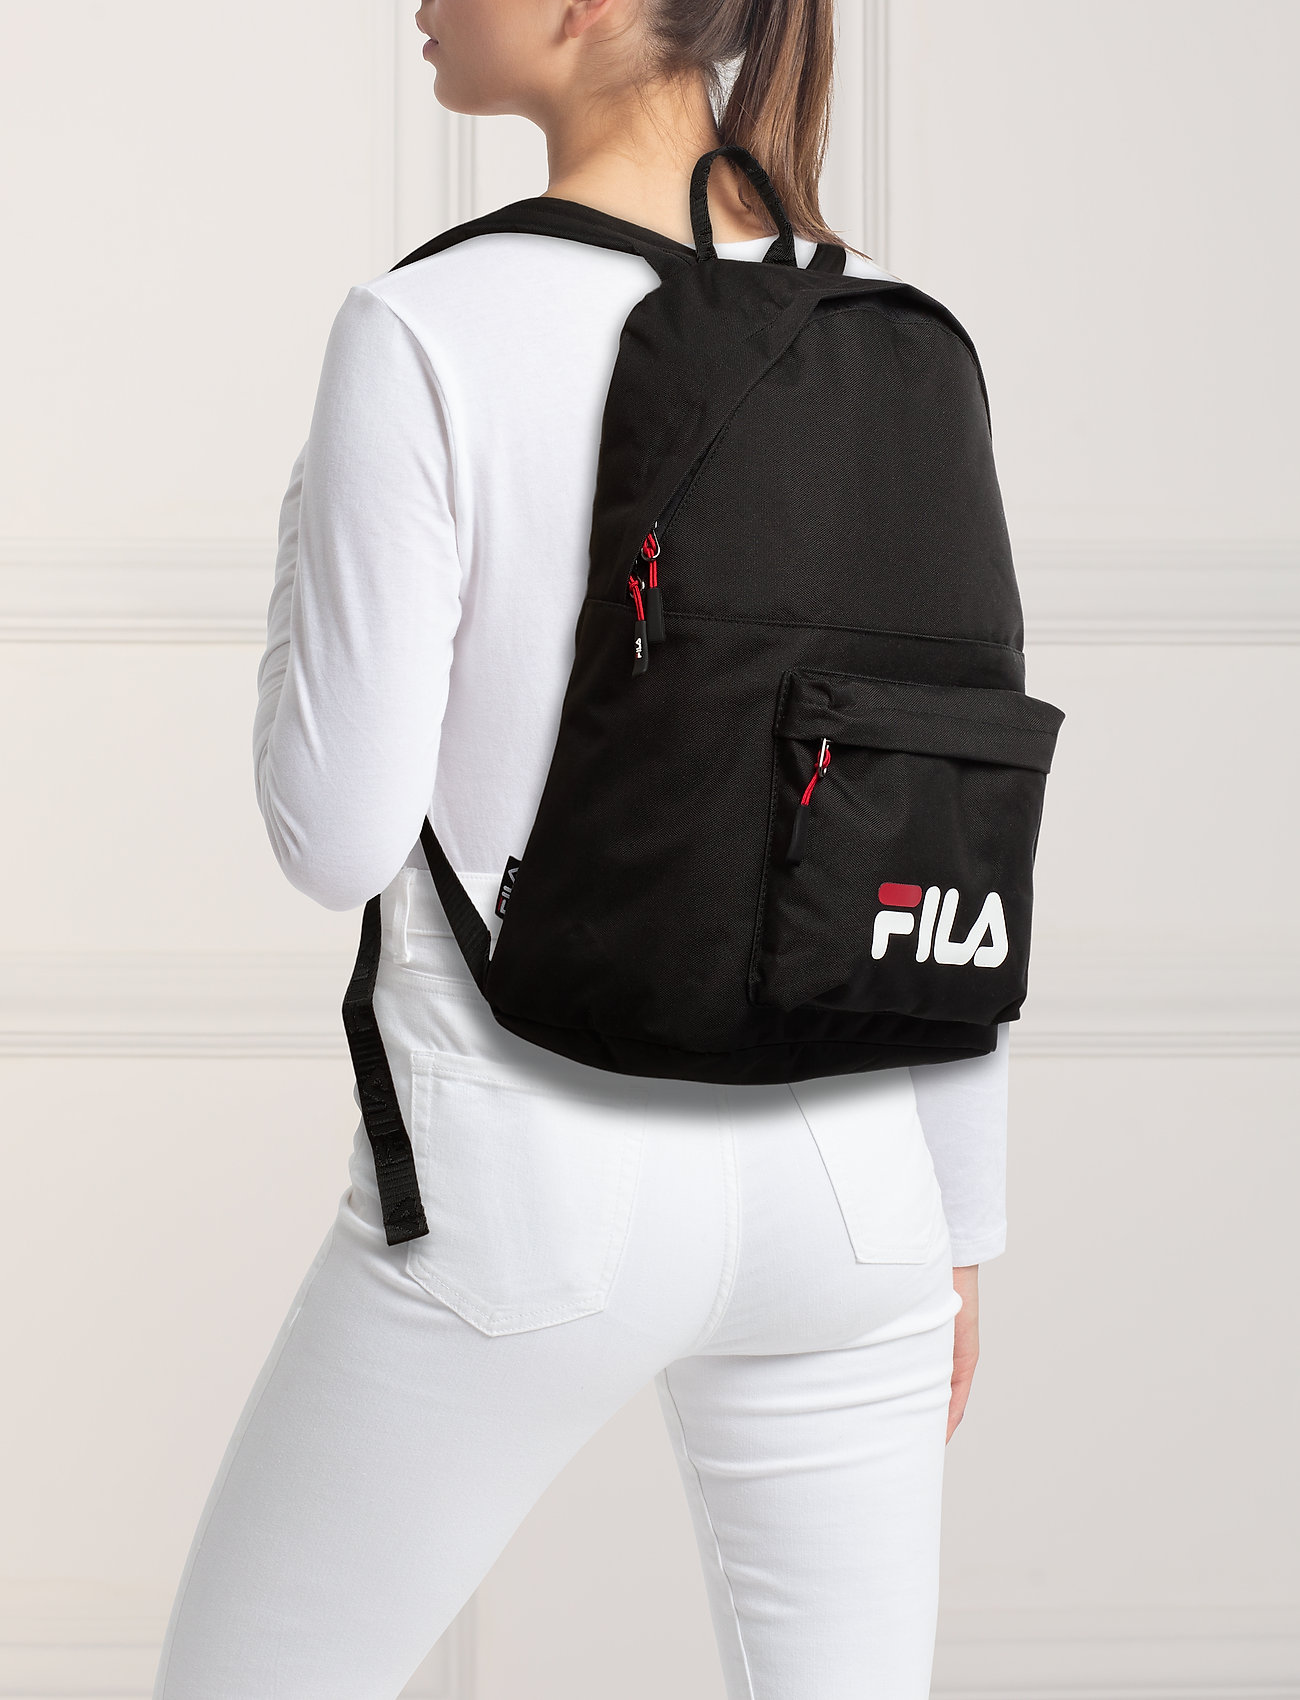 FILA NEW BACKPACK S´COOL TWO - BLACK